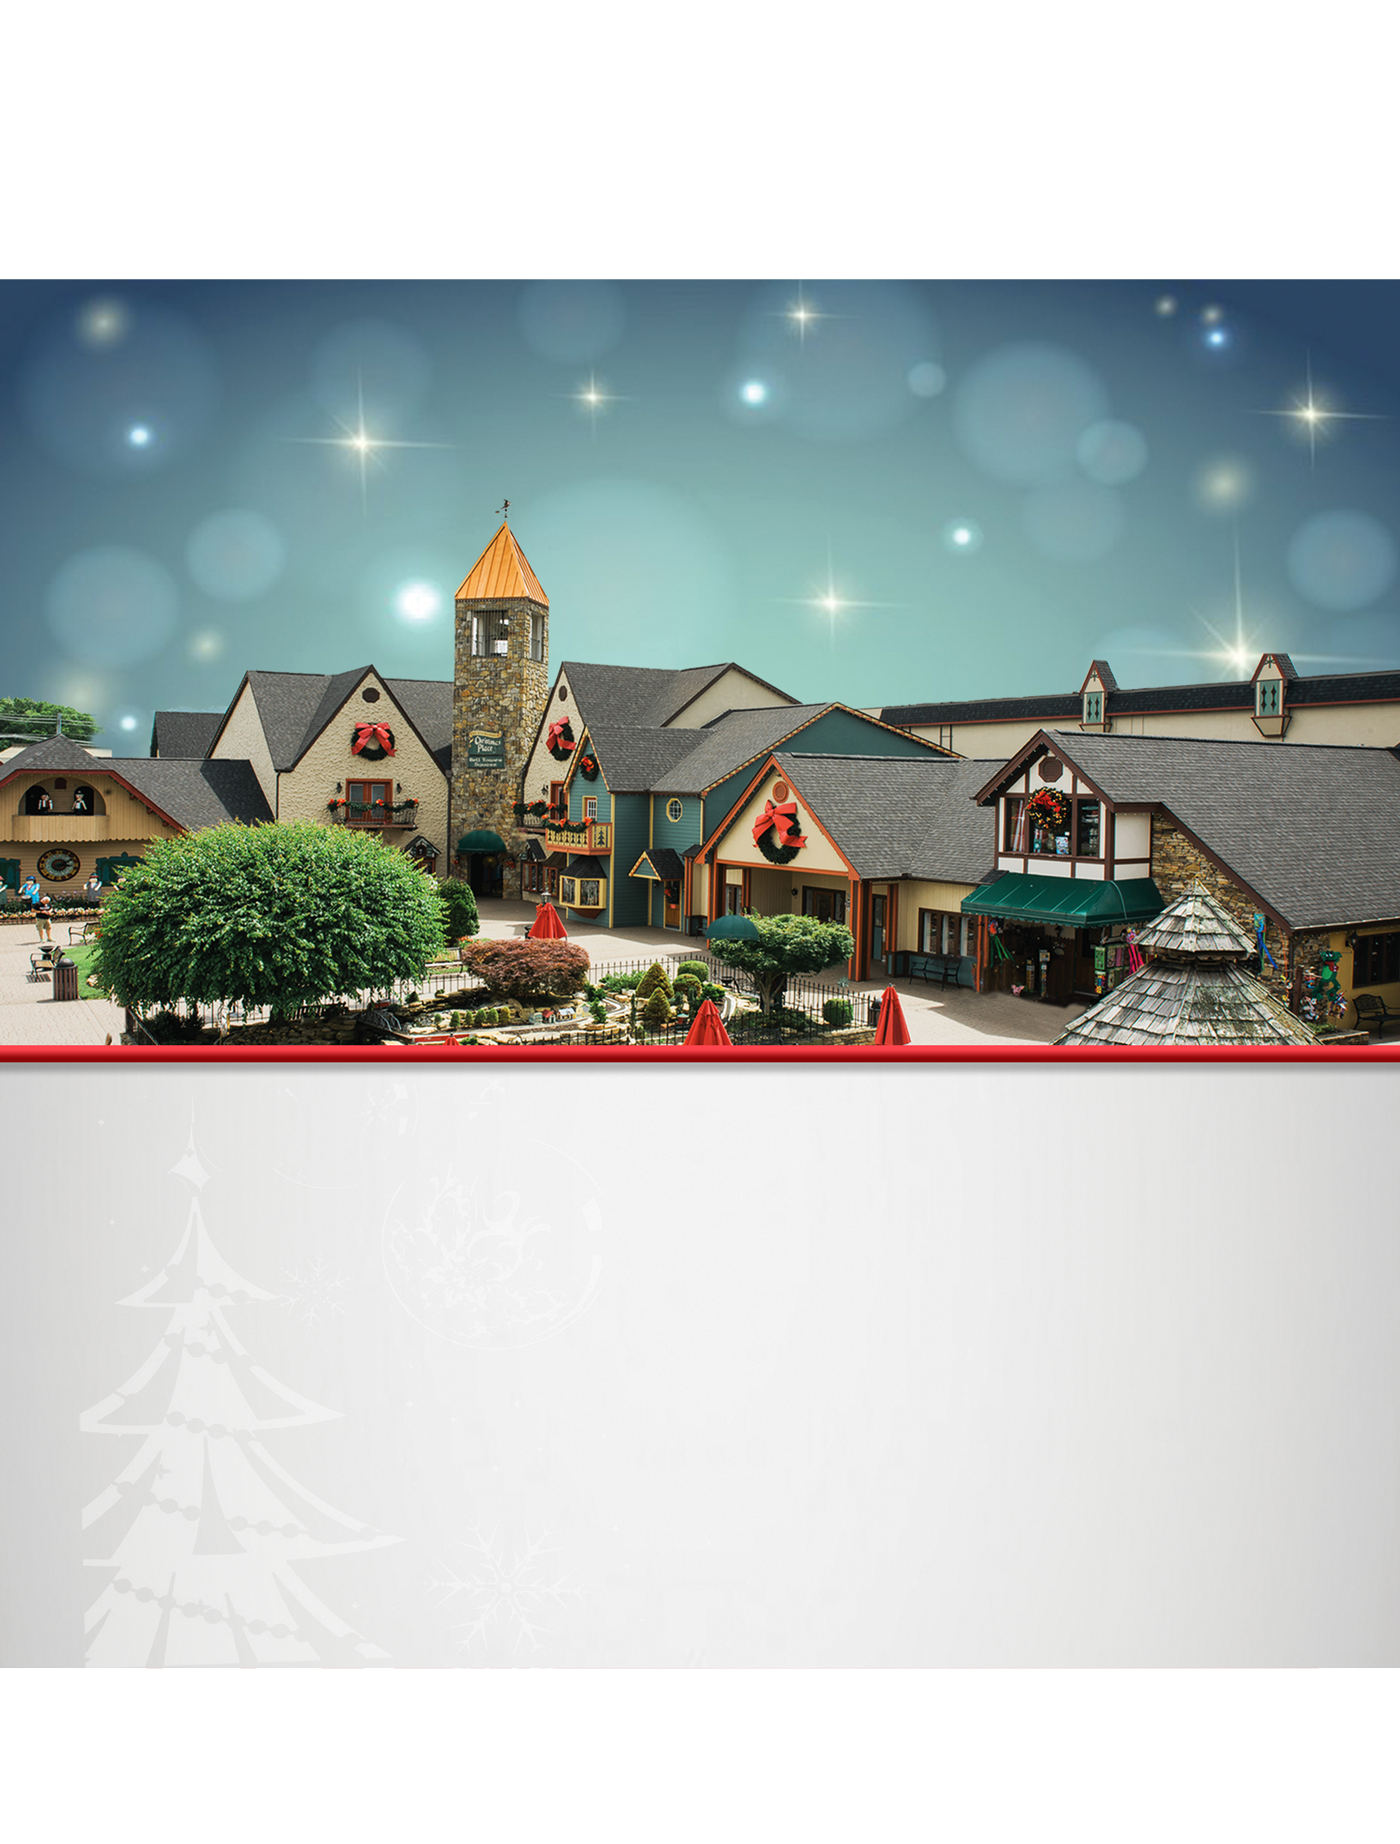 LocalFlavor.com - The Incredible Christmas Place - $15 for $30 ...